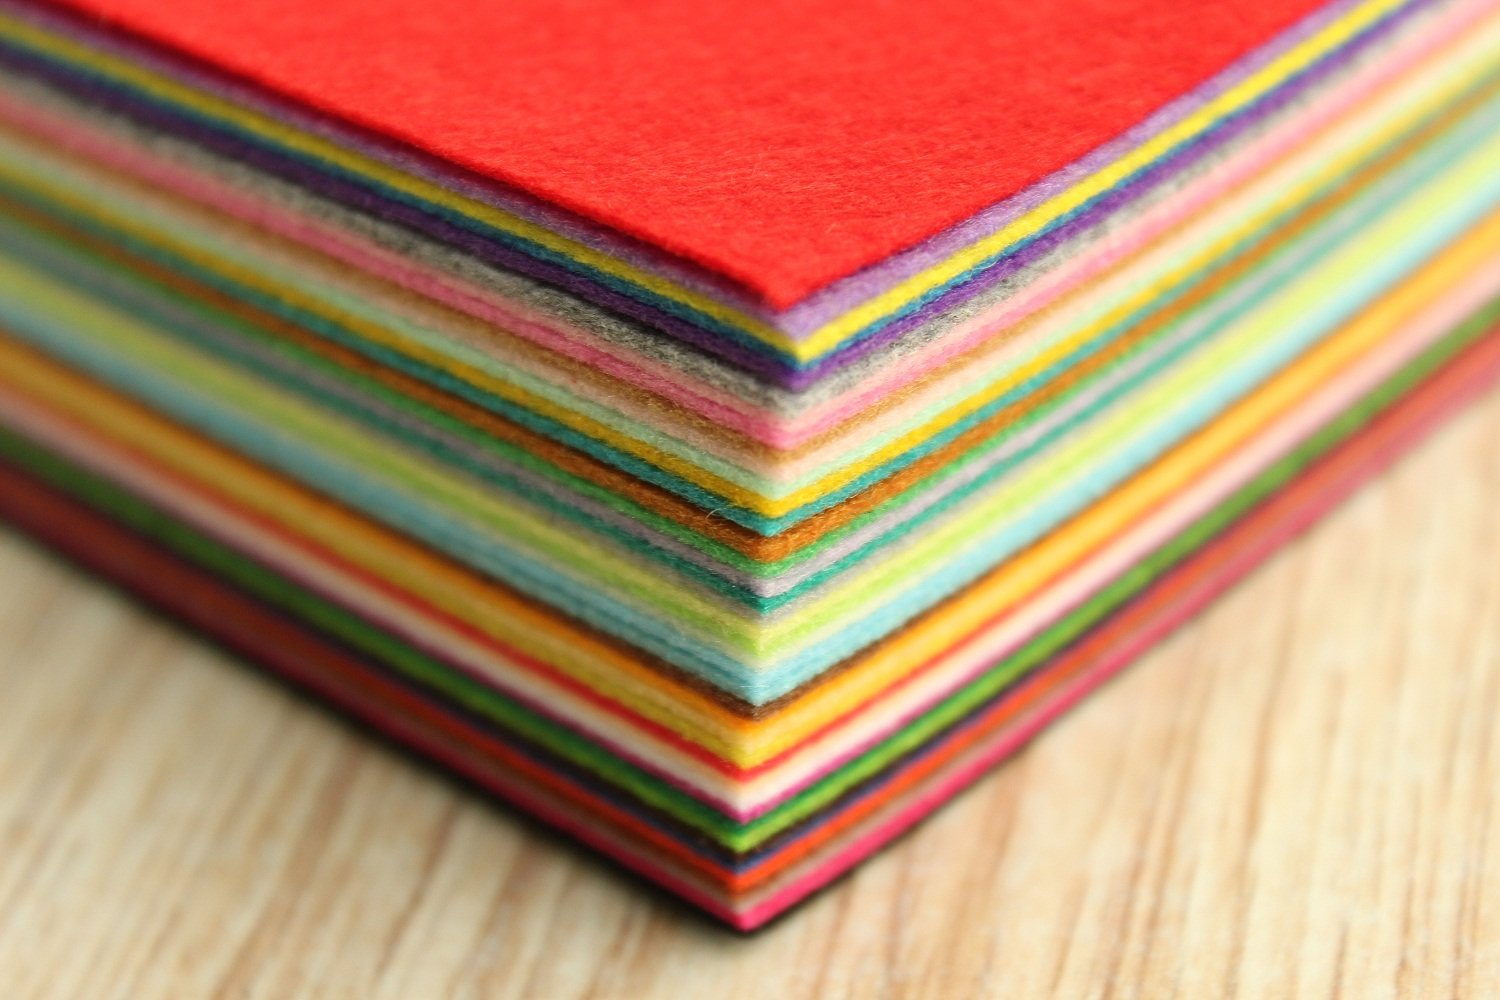 Life Glow DIY Polyester Stiff Felt Fabric Squares Sheets Assorted Colors 12x12 inch for Crafts, 1mm Thick 40Pcs by Life Glow (Image #4)